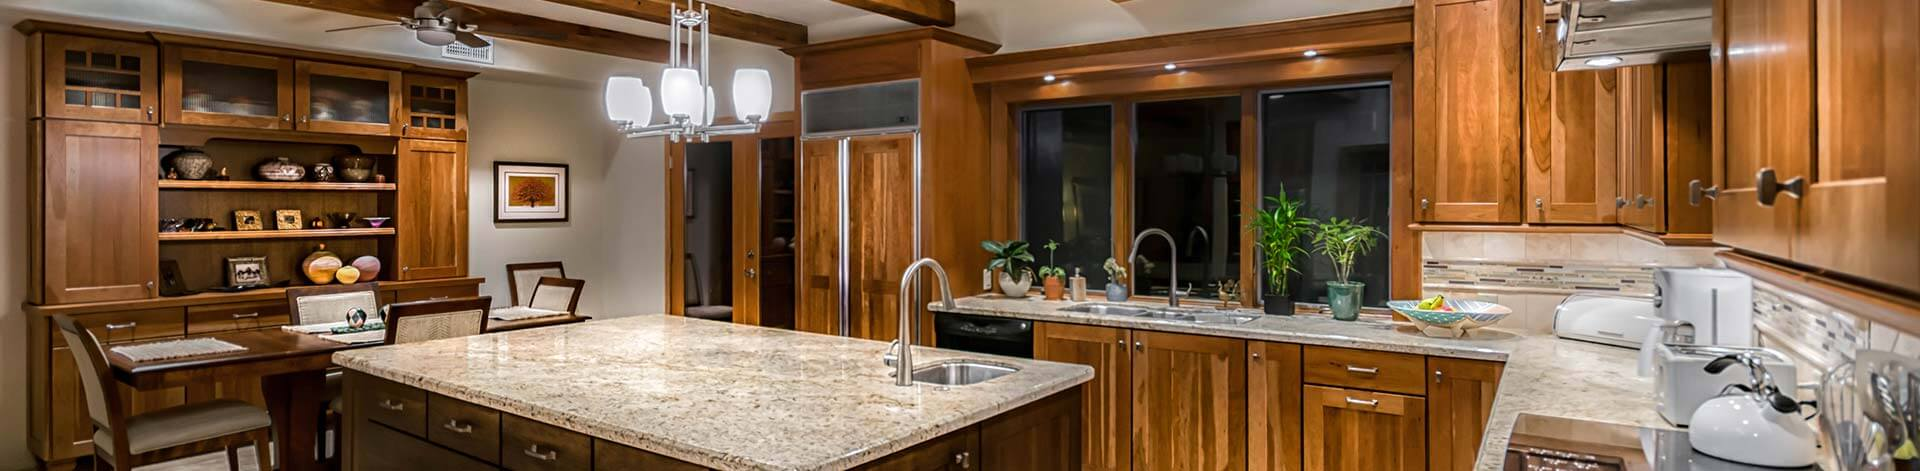 Kitchen Remodeling in Phoenix & Scottsdale | Republic West Remodeling